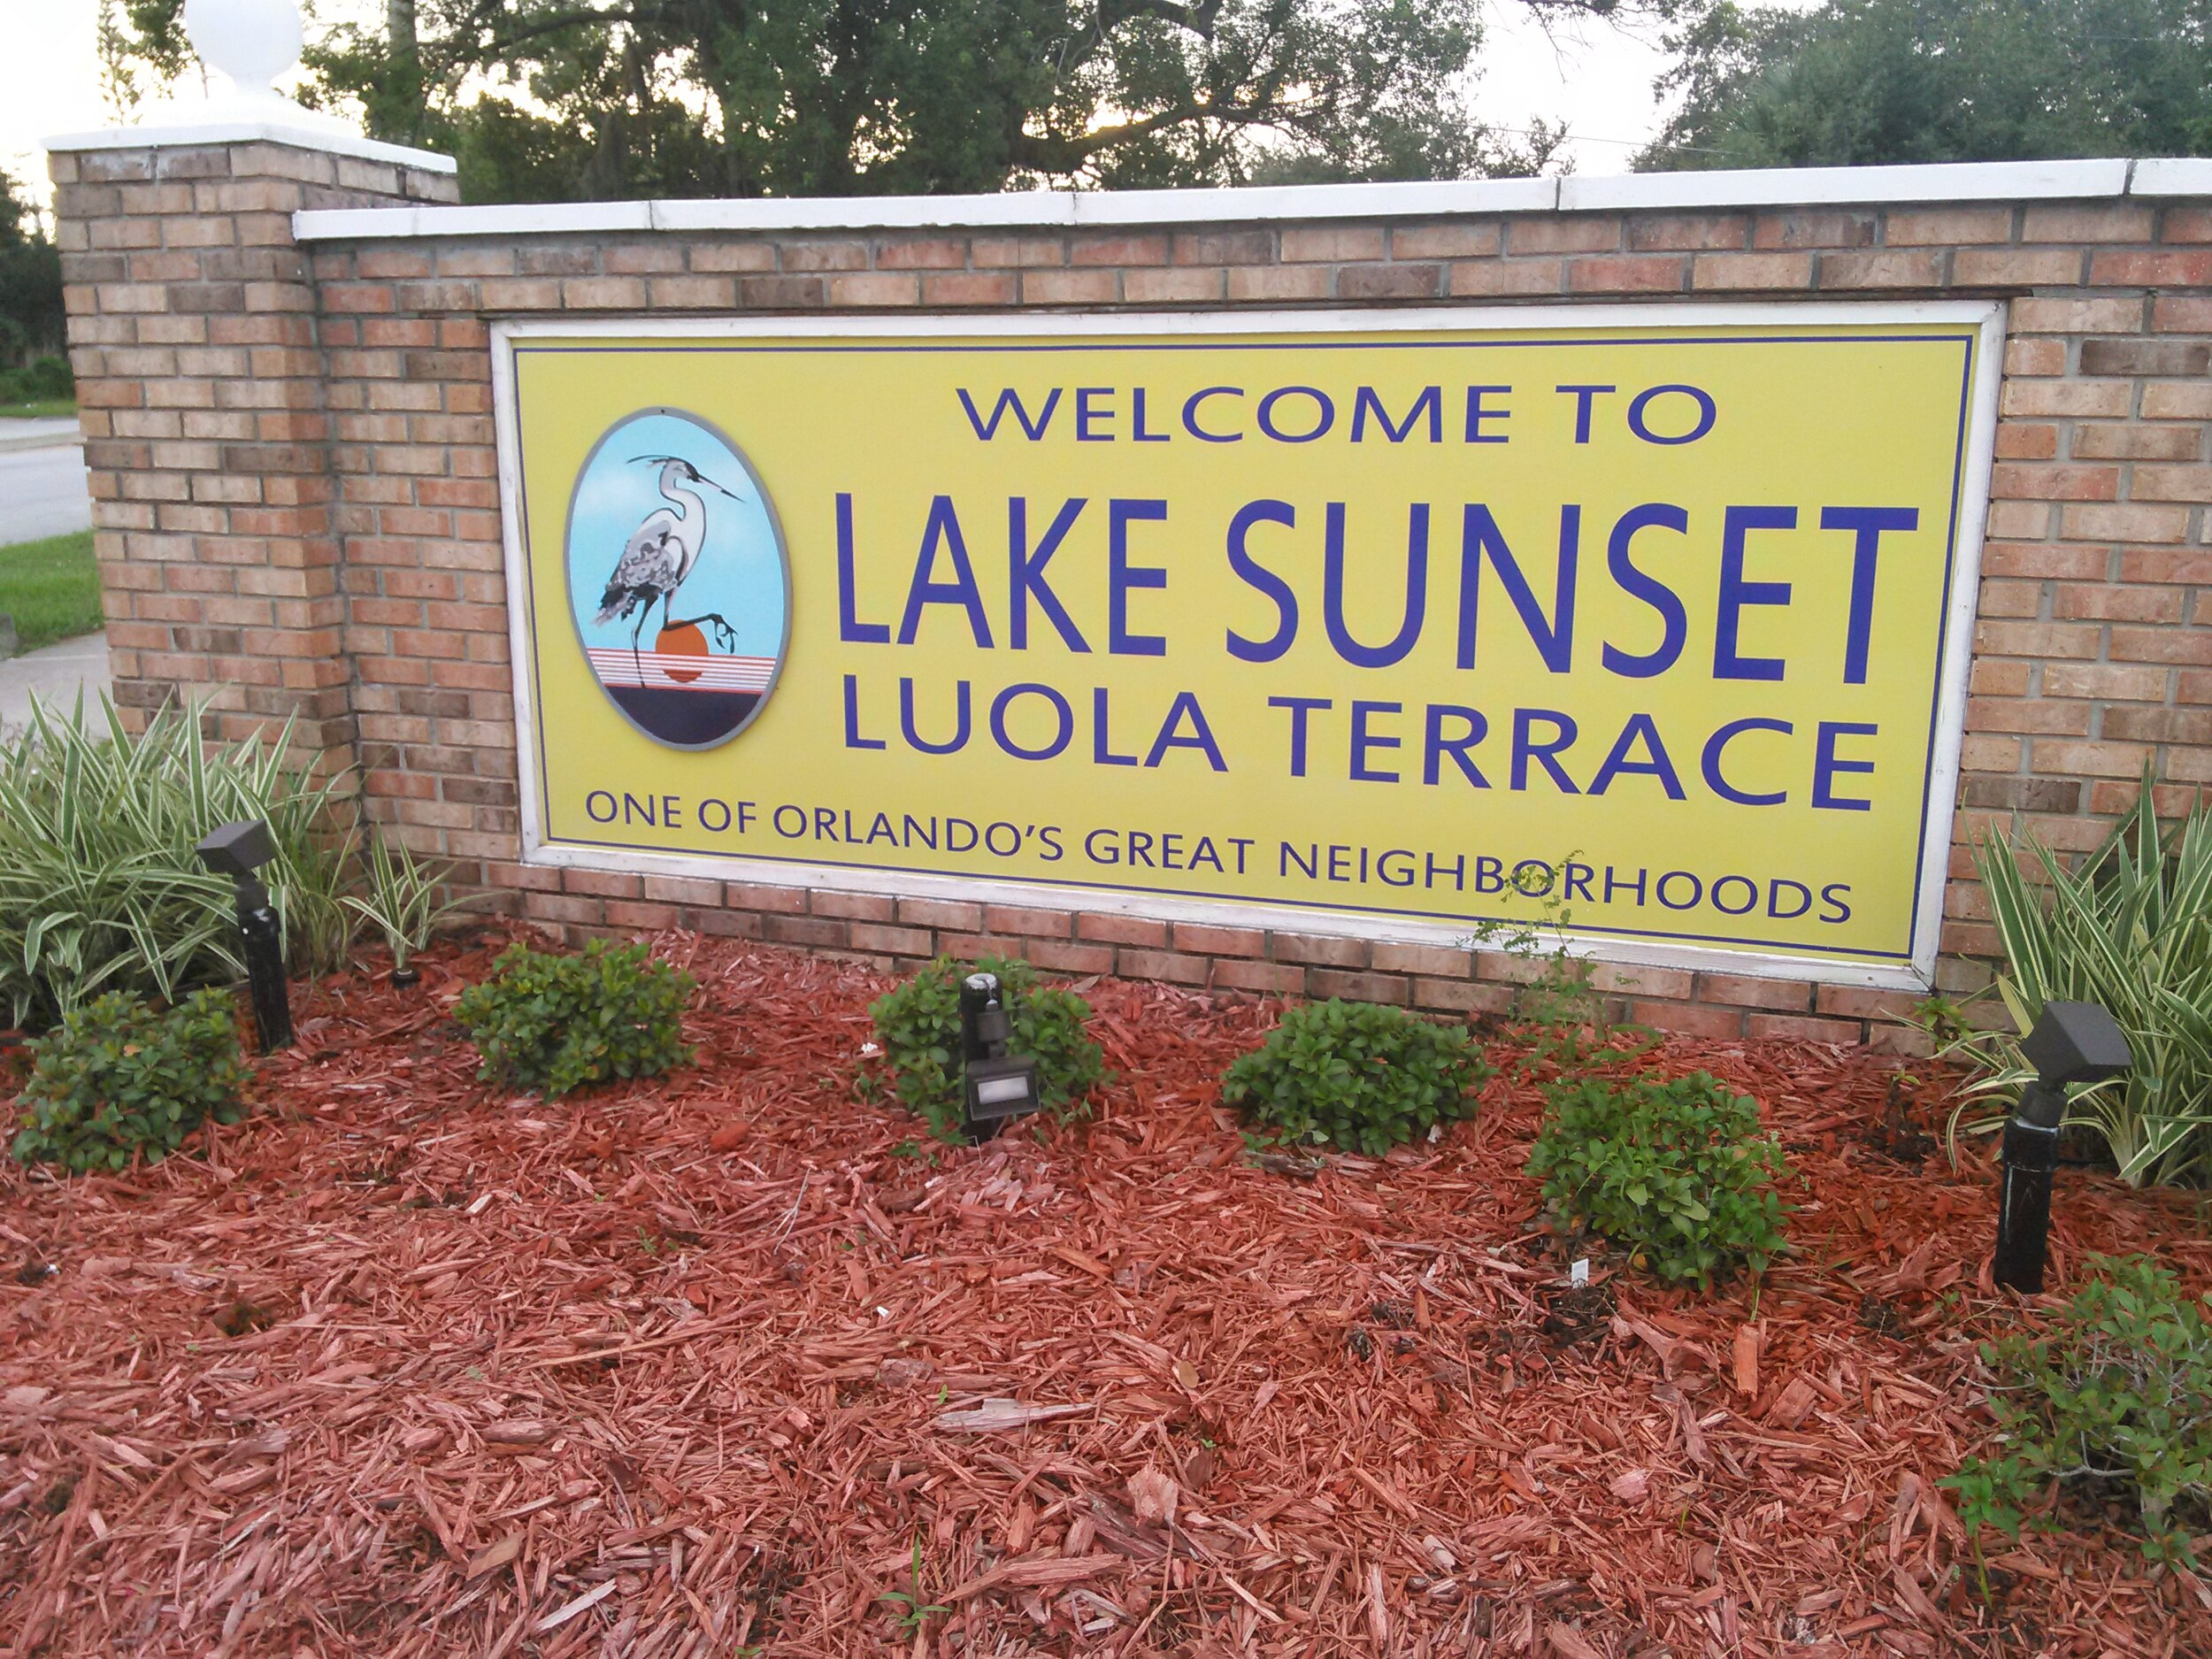 """LAKE SUNSET LUOLA TERRACE   Oldest of the West Lakes neighborhoods, established in 1925. Named for Orlando's  west lake on the edge of town facing the setting sun.  The """"Luola Terrace"""" area was established in 1957, named from Luola Cox, wife of early Orlando butcher & dairyman who owned the land. Home of Orange Center Elementary School and Lizzie Rodgers Park, named for community activist."""